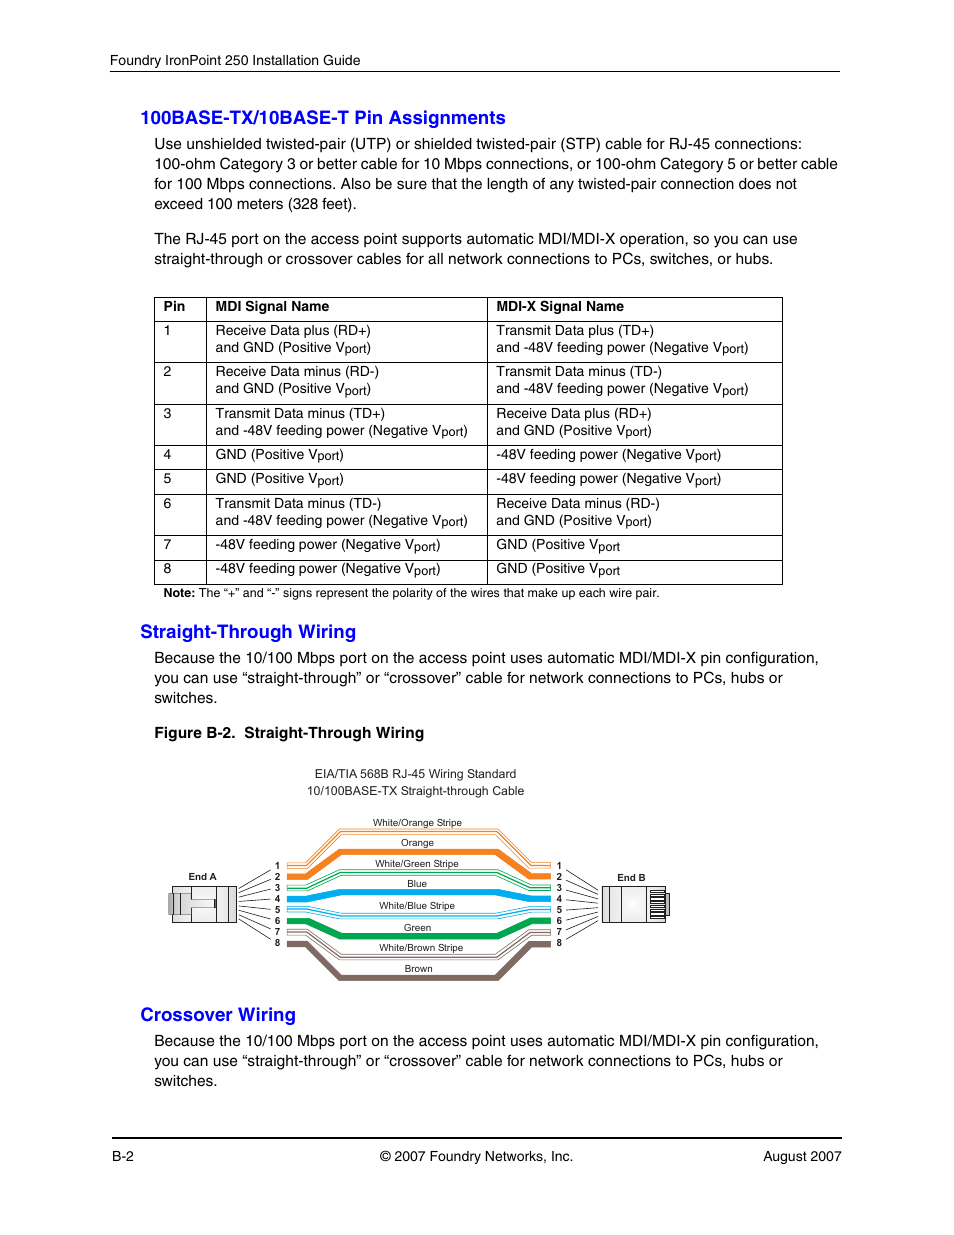 medium resolution of 100base tx 10base t pin assignments straight through wiring crossover wiring foundry networks ironpoint 250 user manual page 46 64